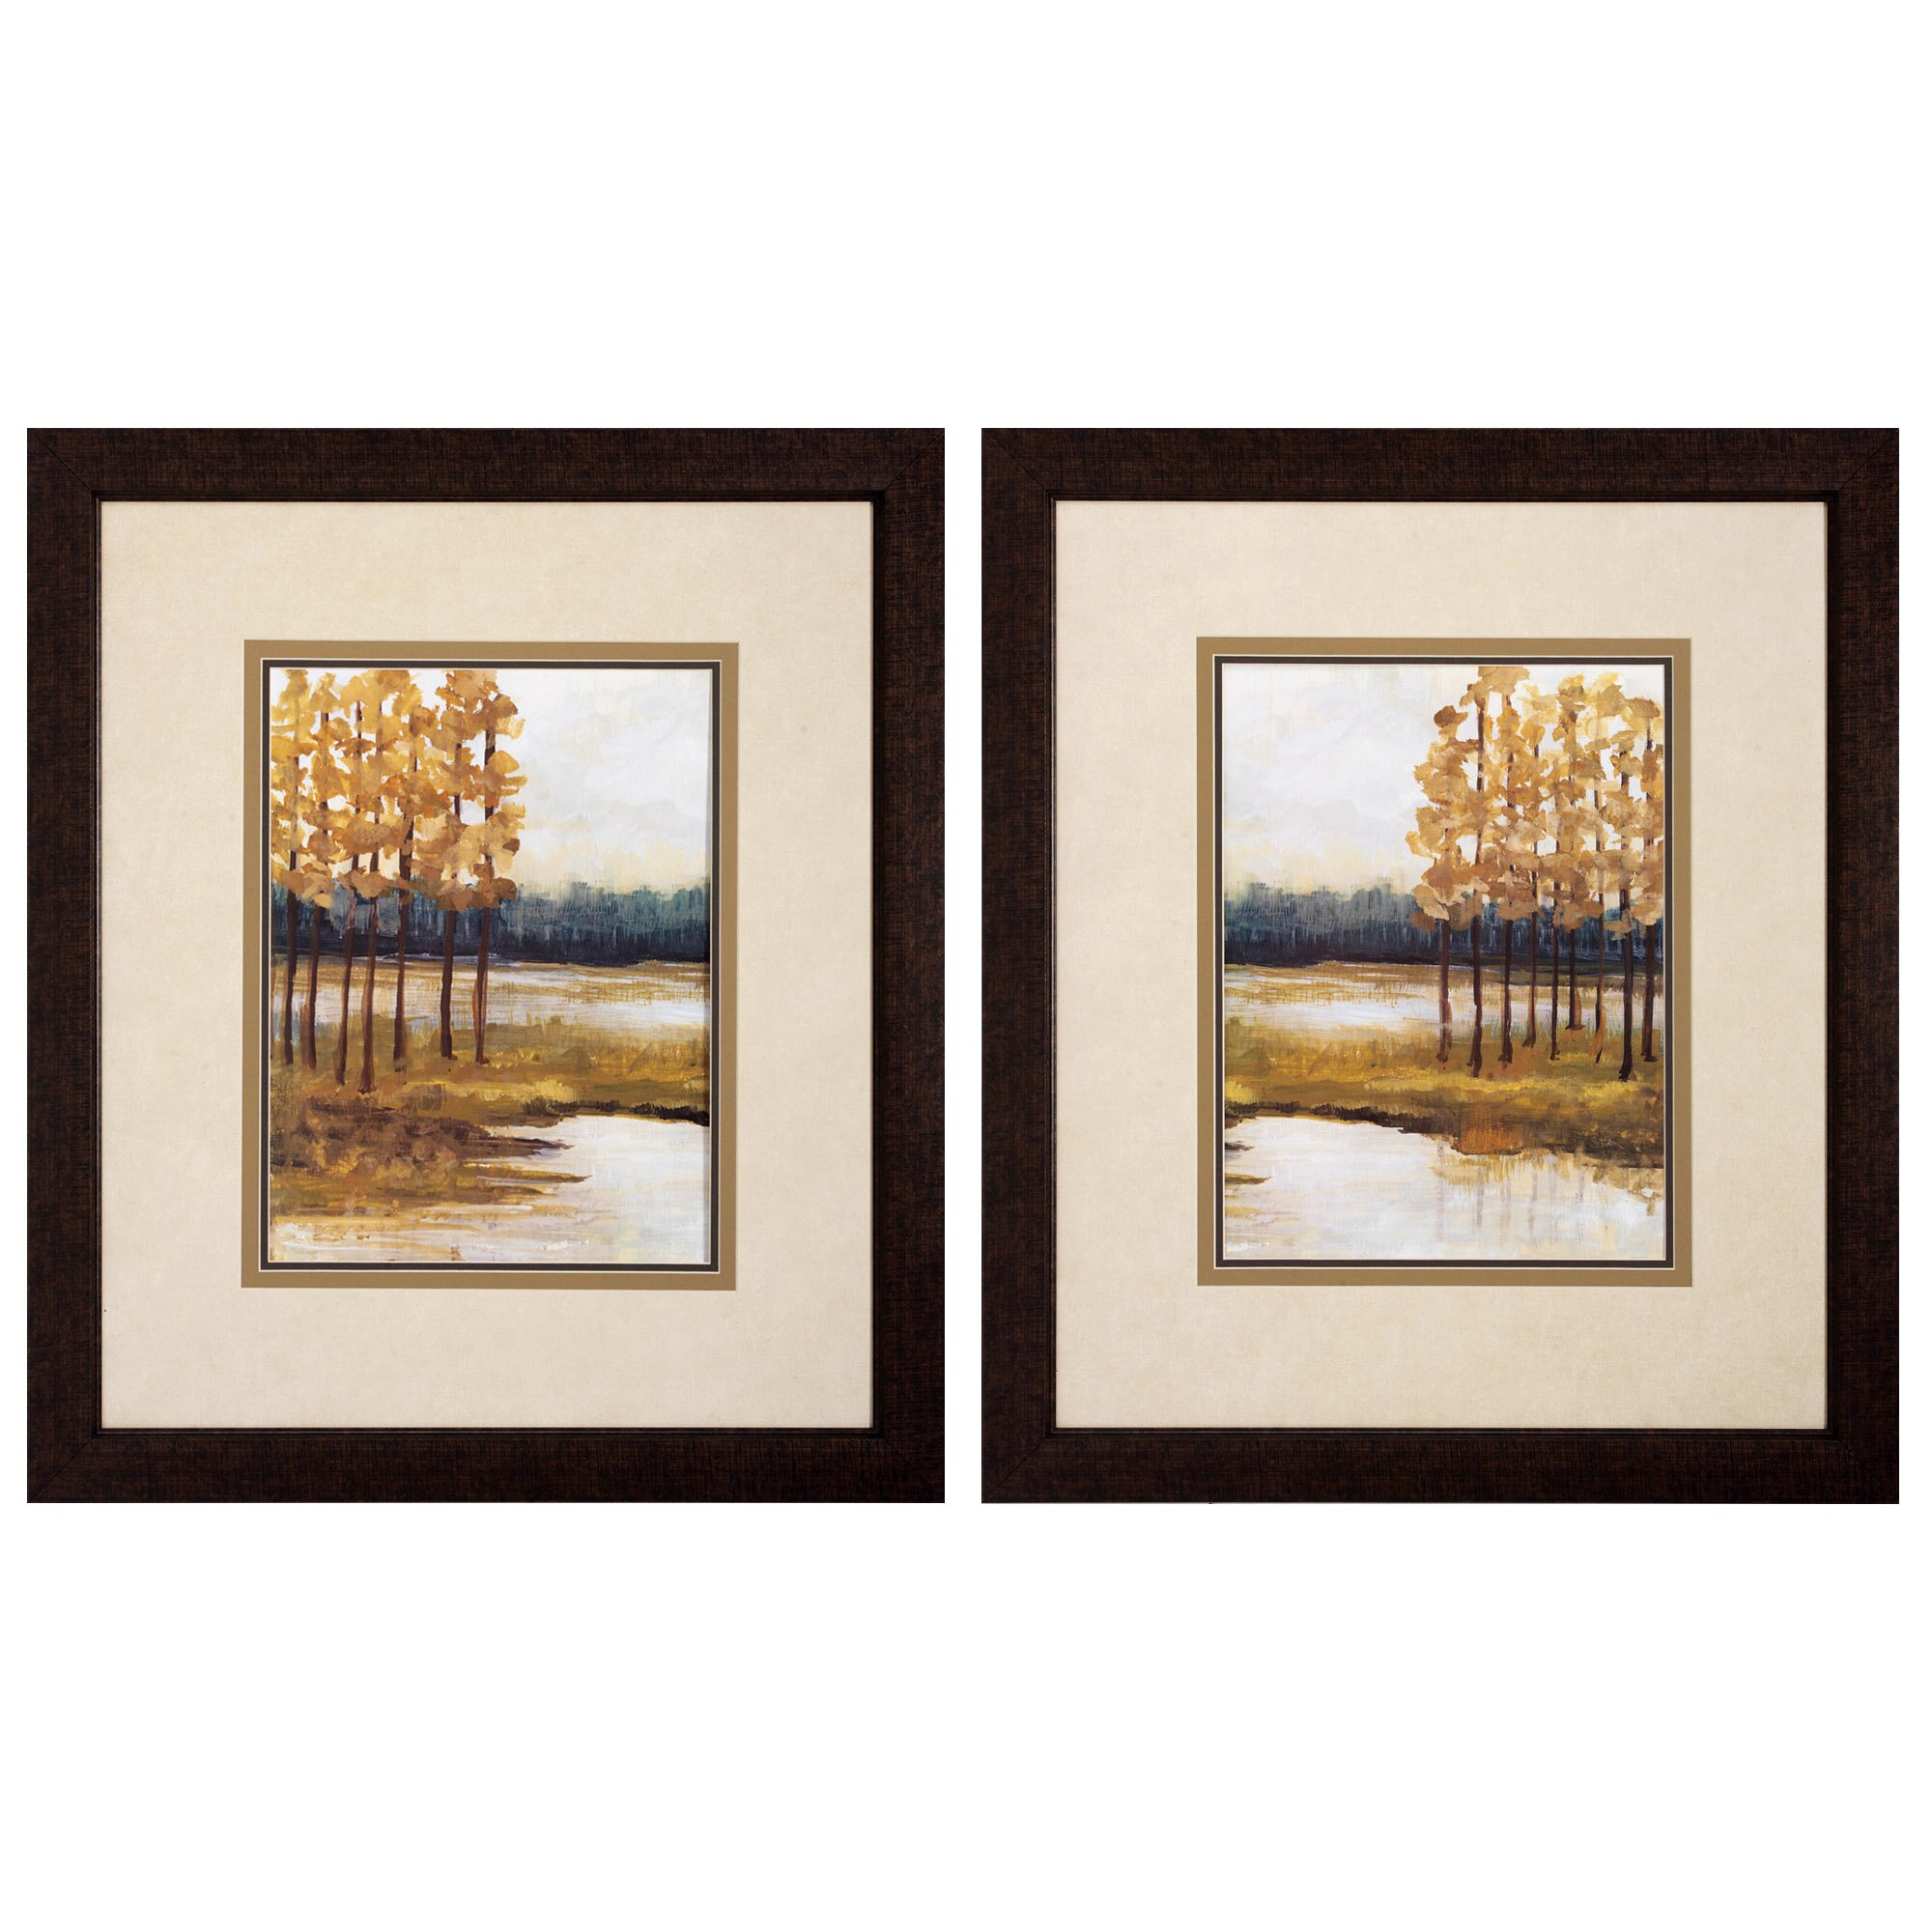 Propac Images Etoile 2 Piece Framed Wall Art Set Reviews Wayfair